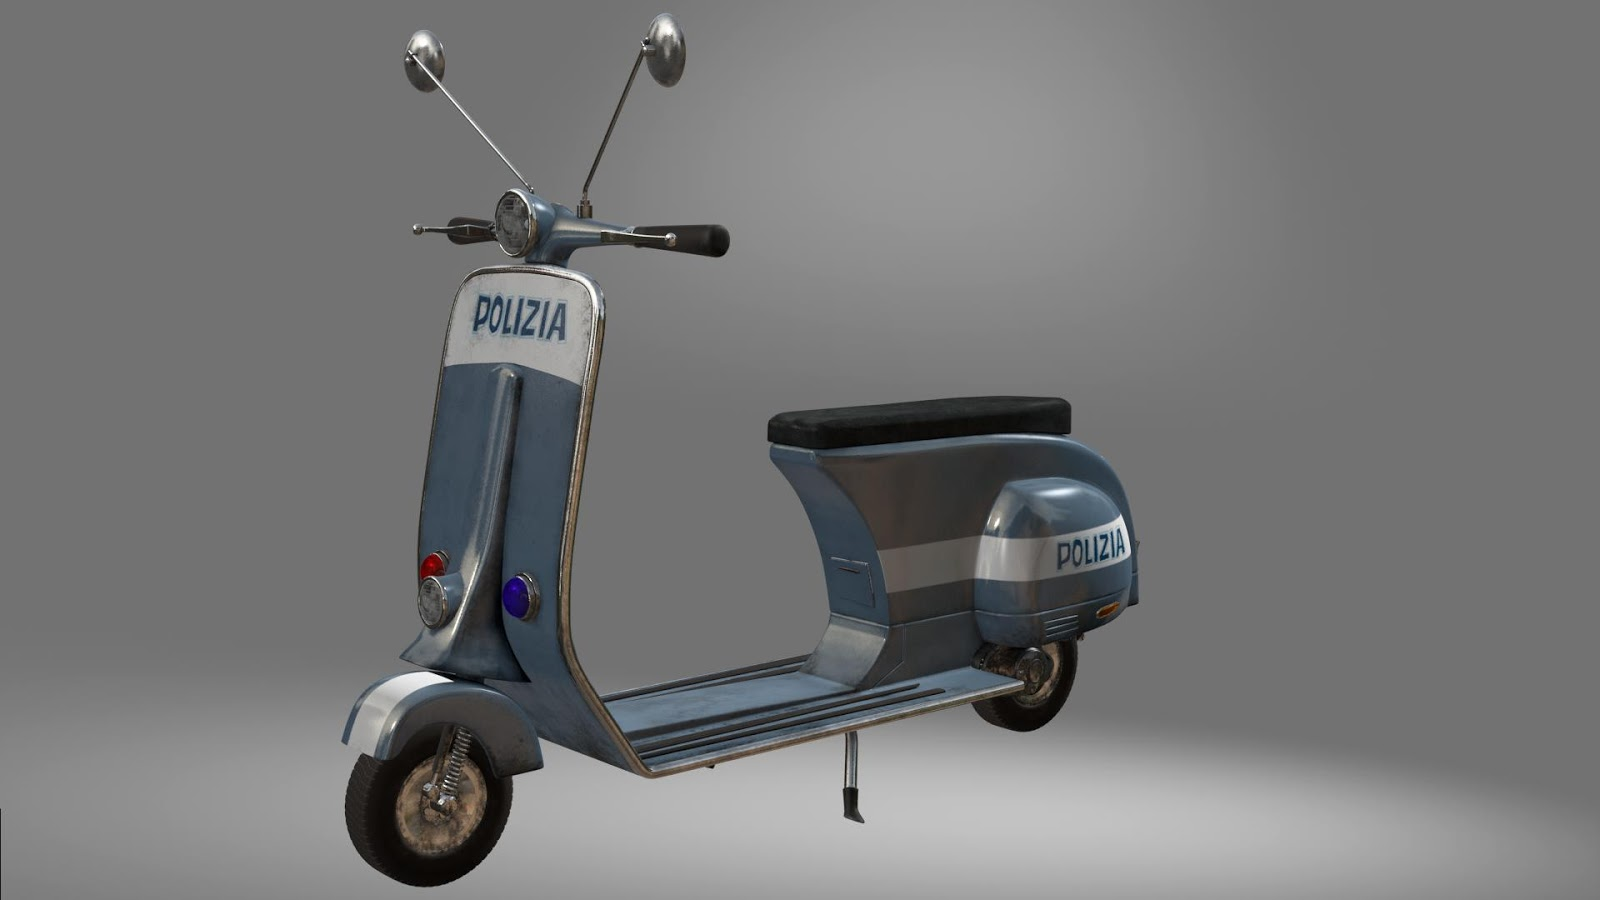 Surfacing - police scooter -- Madagascar 3 | Kevin Turcotte Art: kevinturcotteart.blogspot.com/2013/02/police-scooter-madagascar-3...